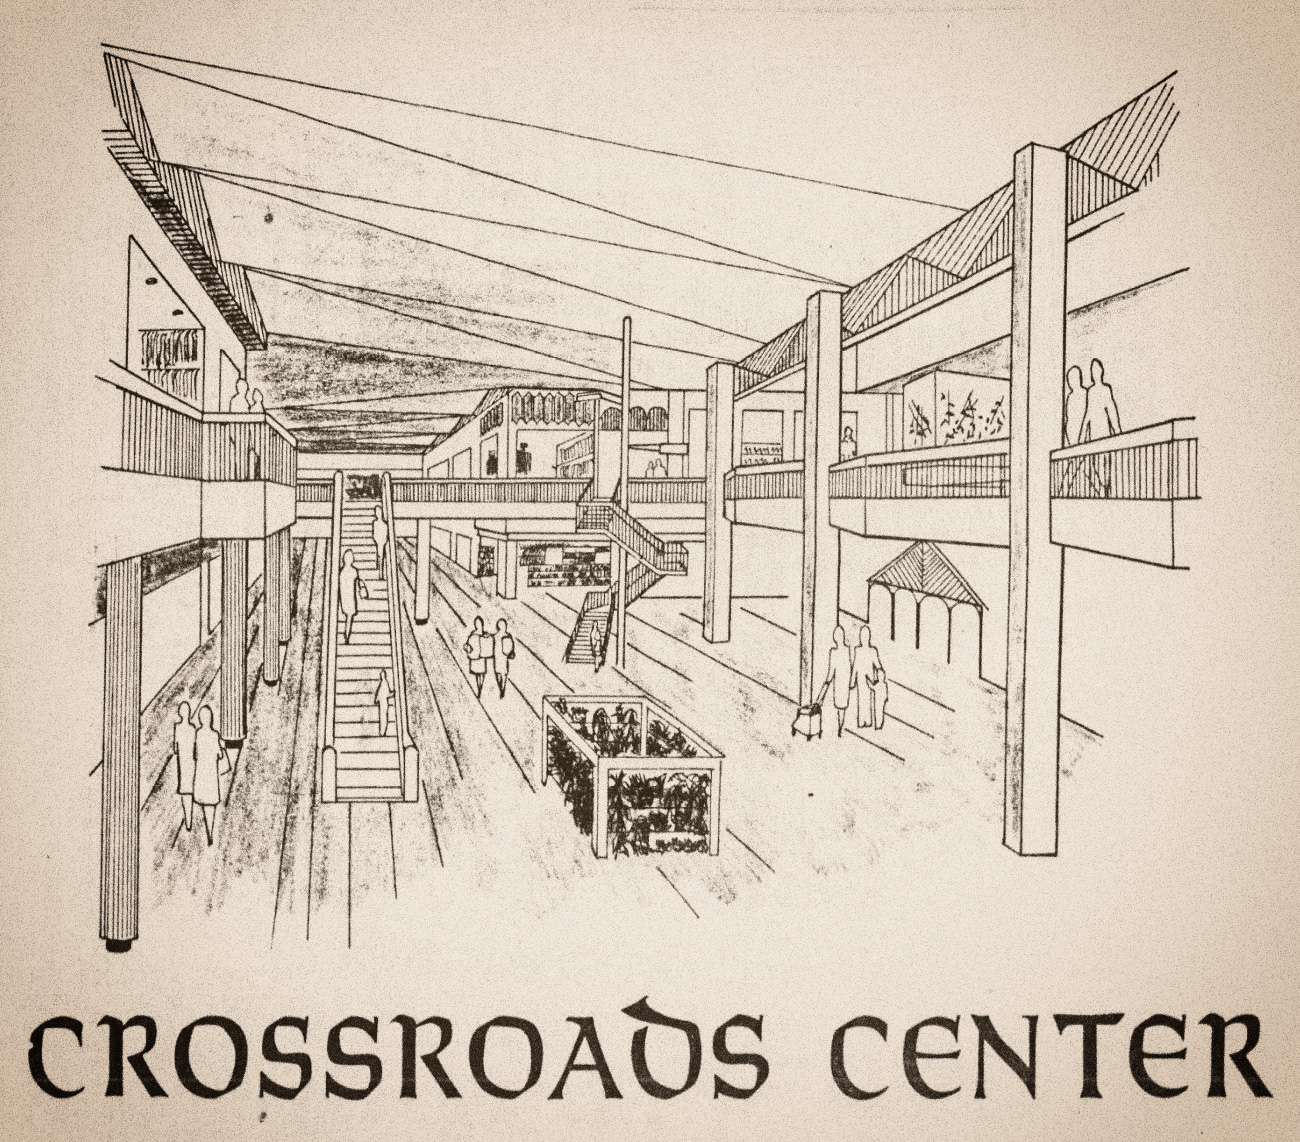 Grand Opening at Crossroads Center